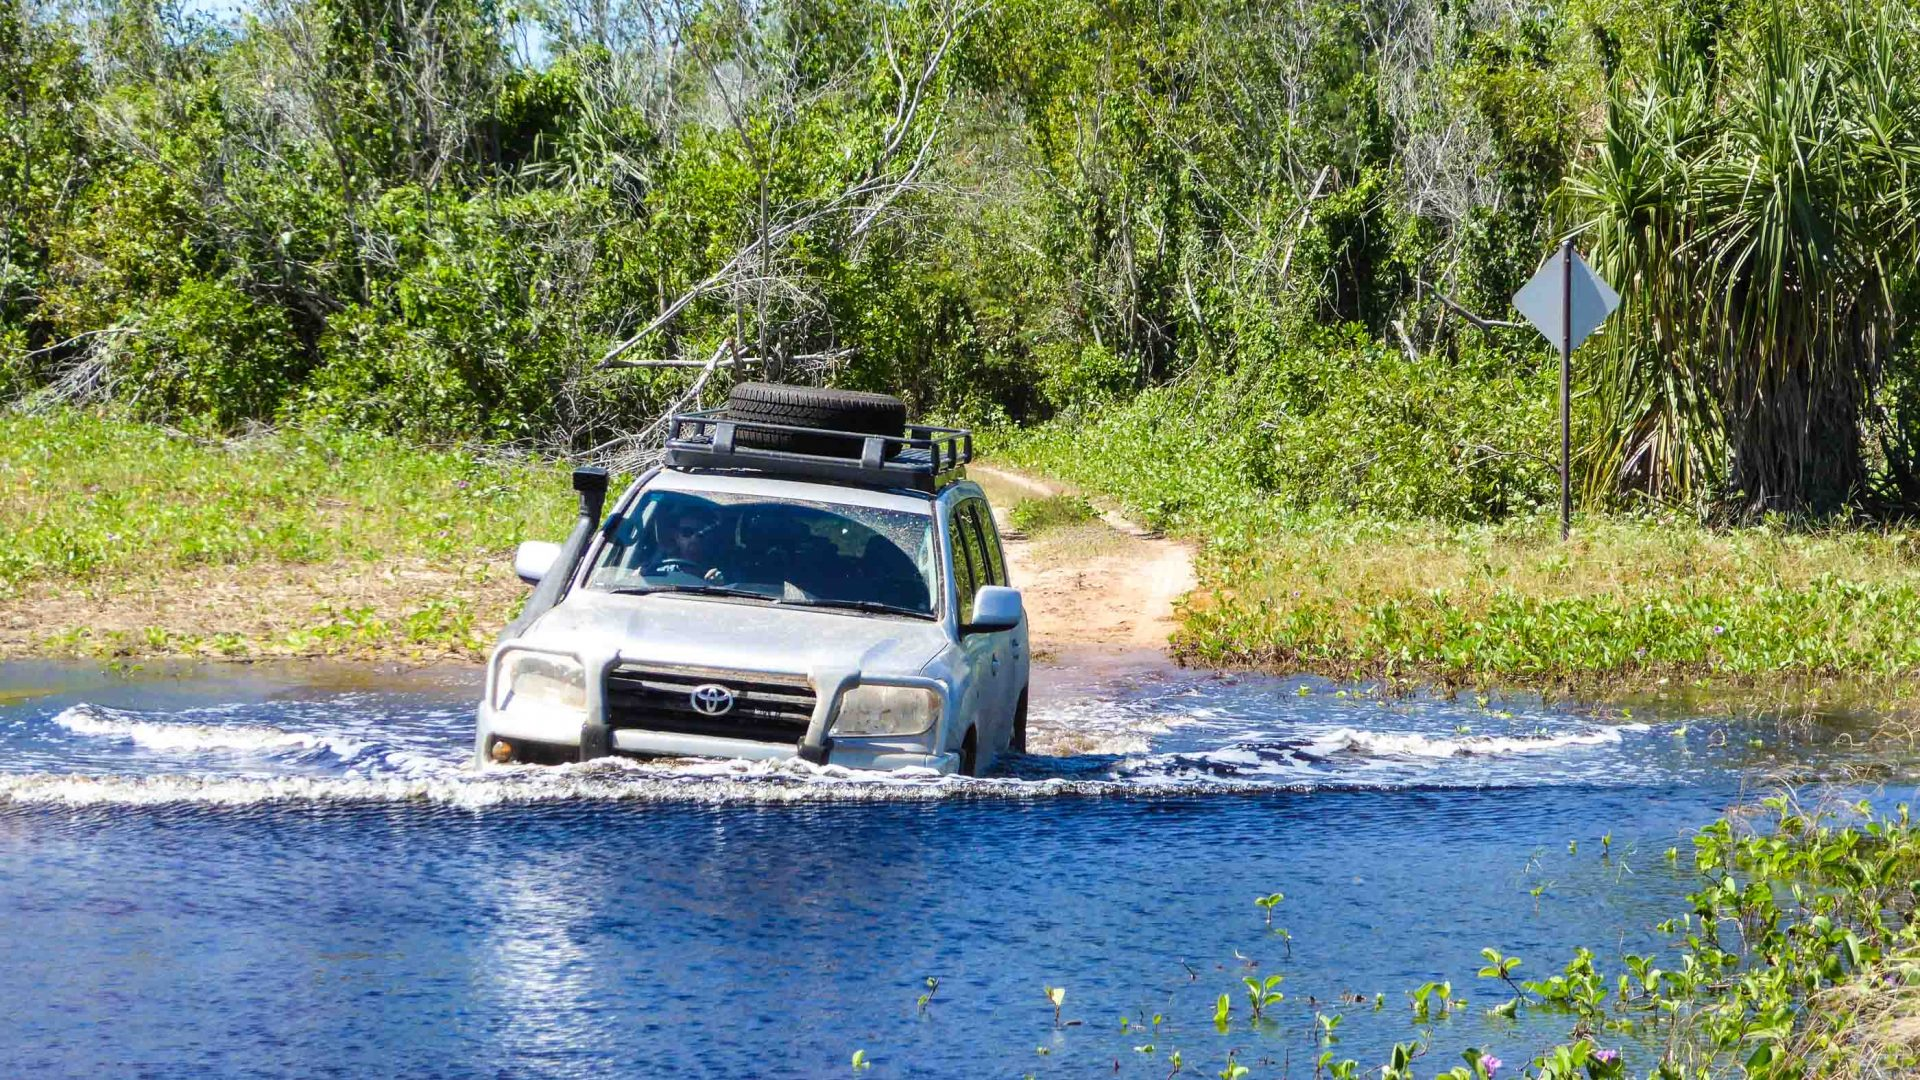 Driving the 4x4wd through the river in the Cobourg Peninsula, Australia.